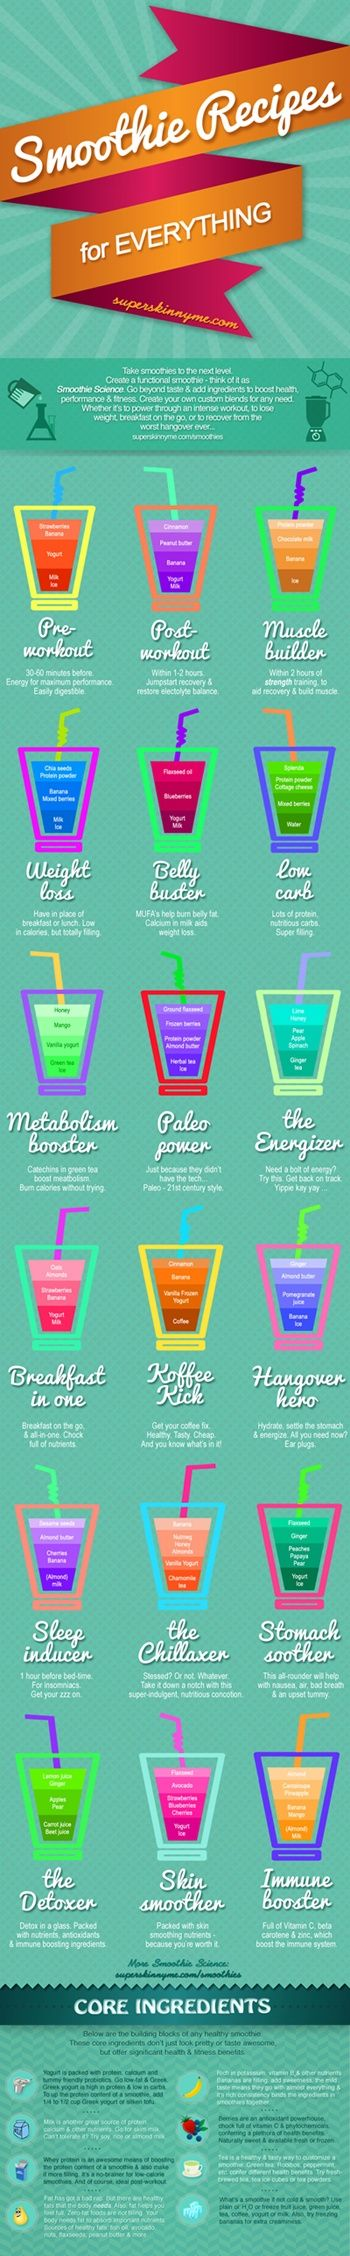 Smoothie recipes for everything! : Sharing The Top Food Pics Online, TopFoodPics.com